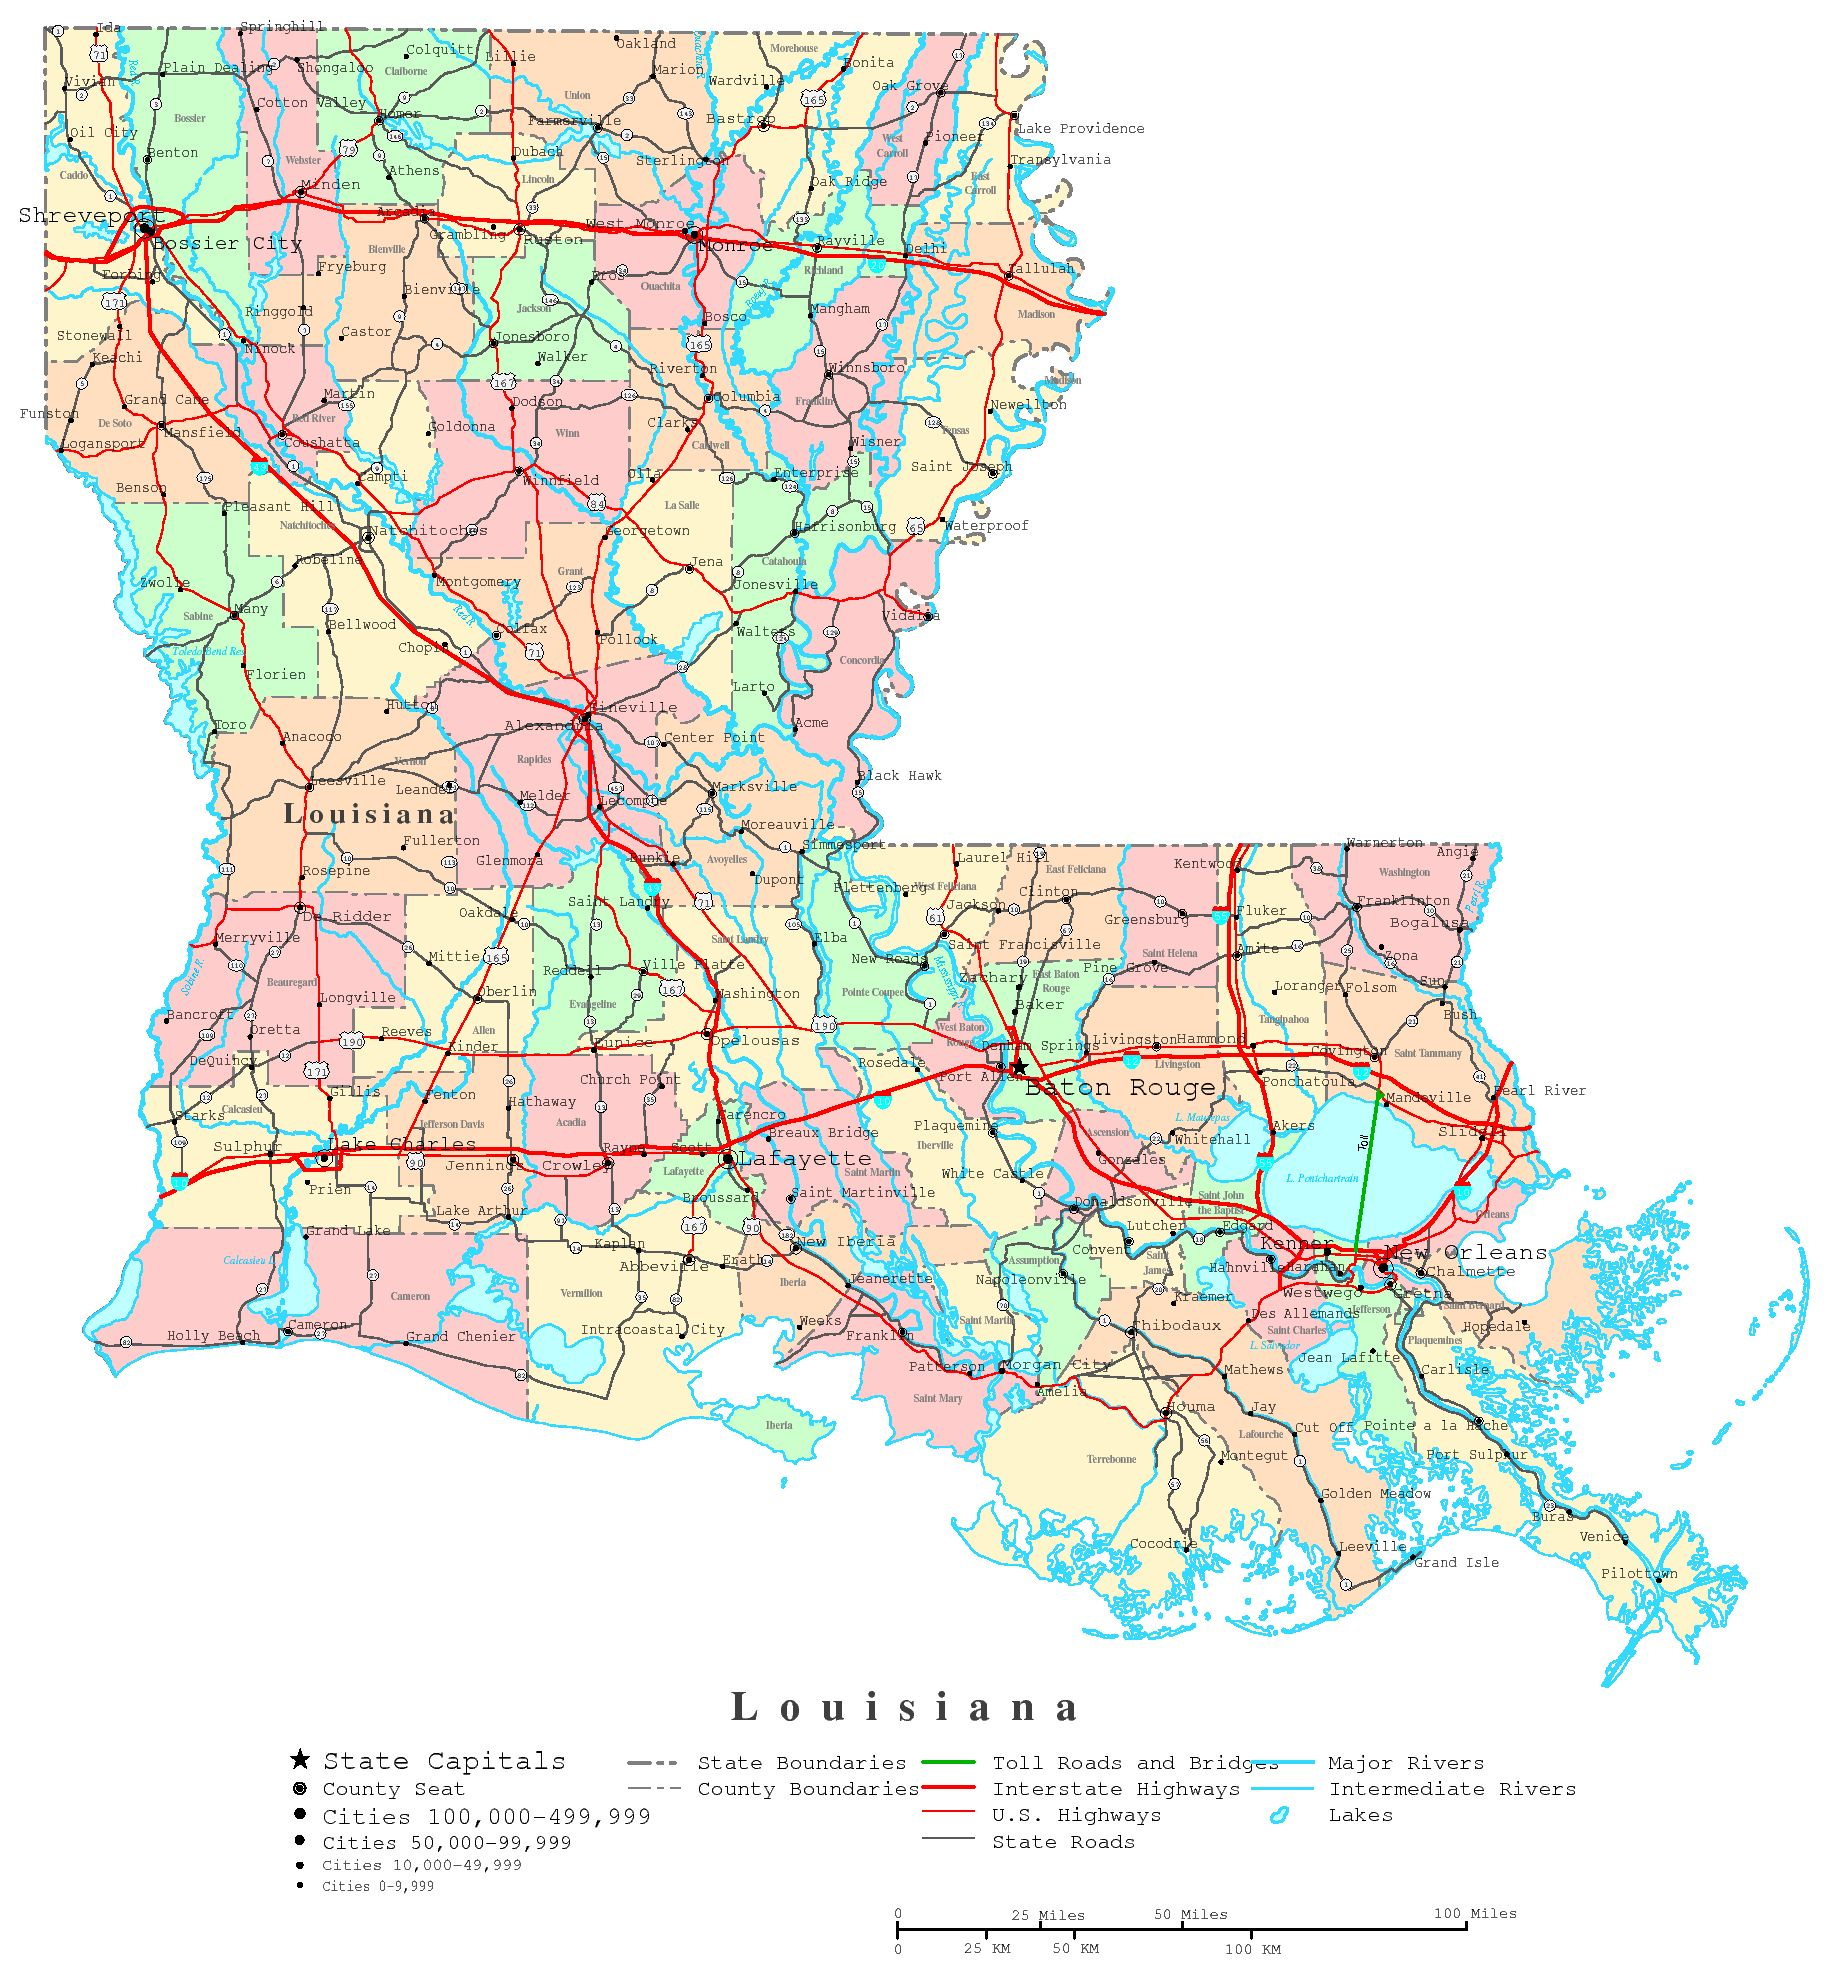 image about Printable Map of Louisiana called Louisiana Printable Map